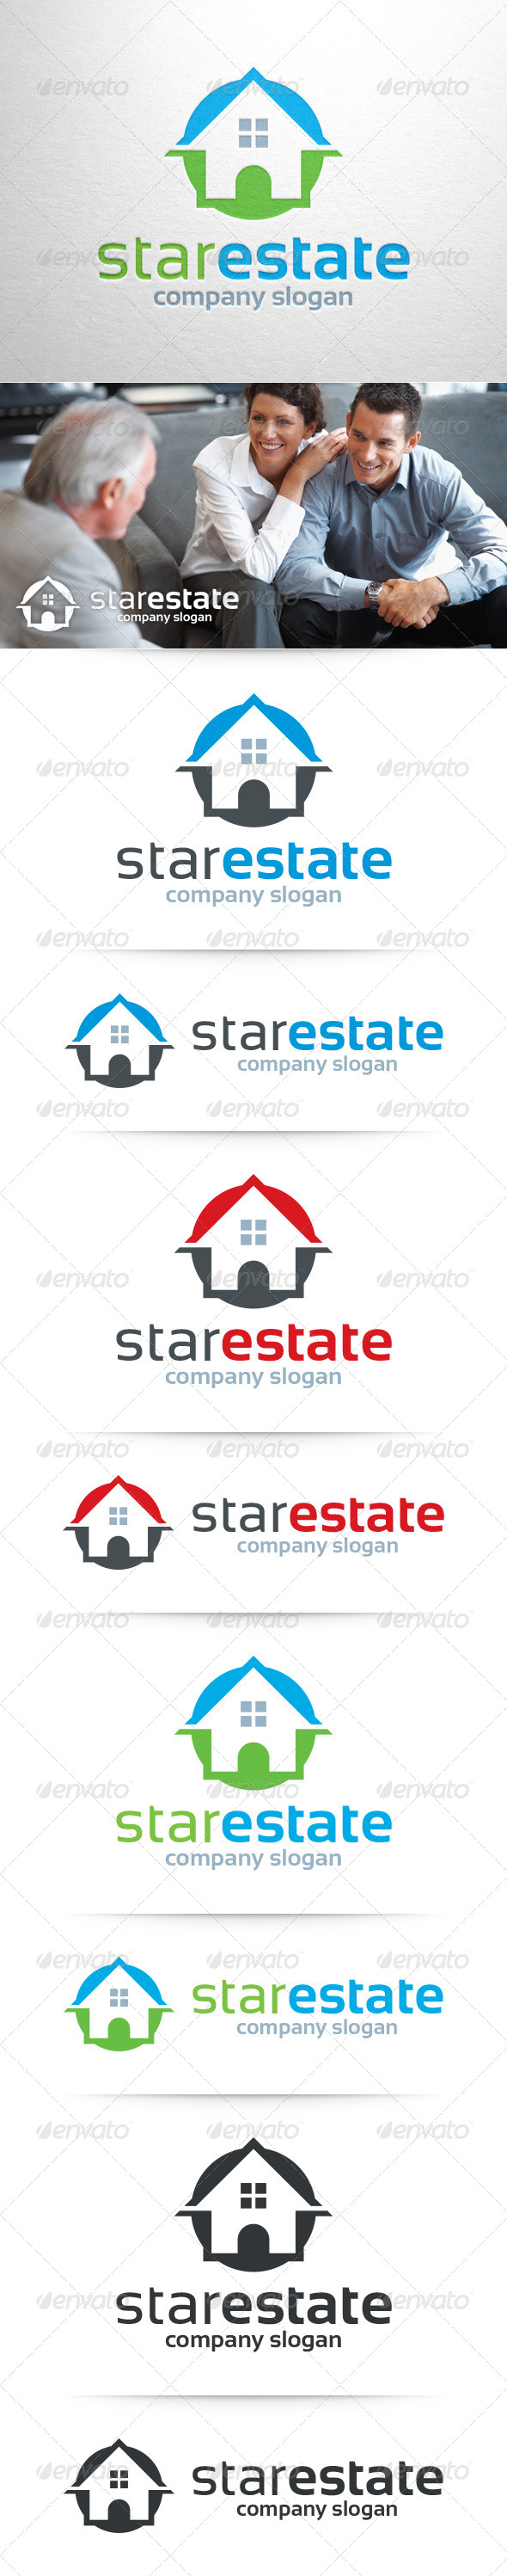 GraphicRiver Star Estate Logo Template 8428942